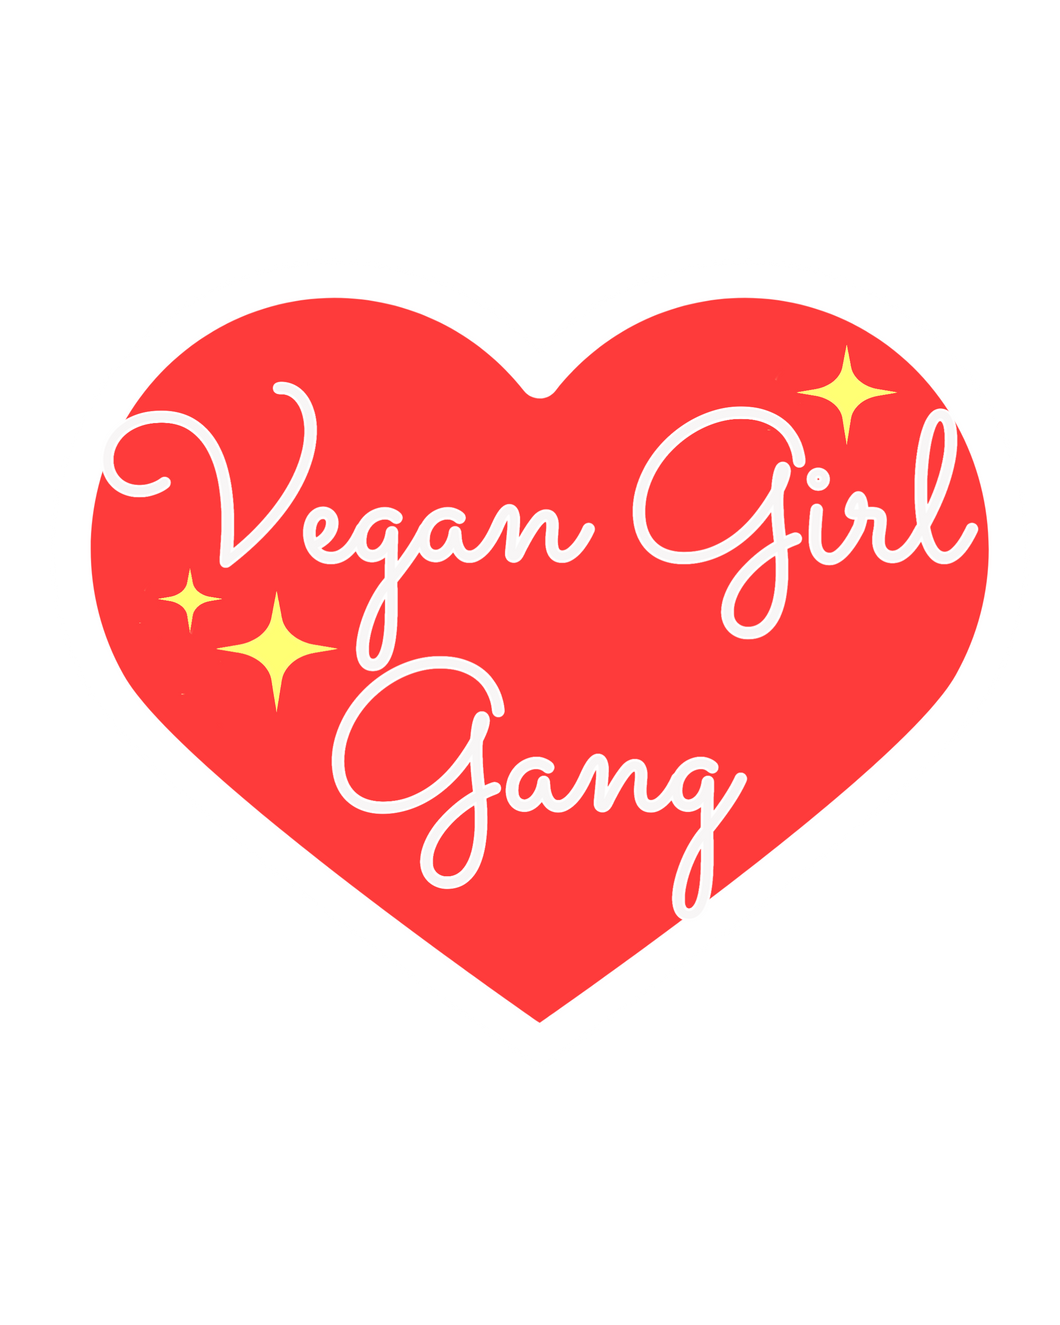 Vegan Girl Gang Logo Sticker in red